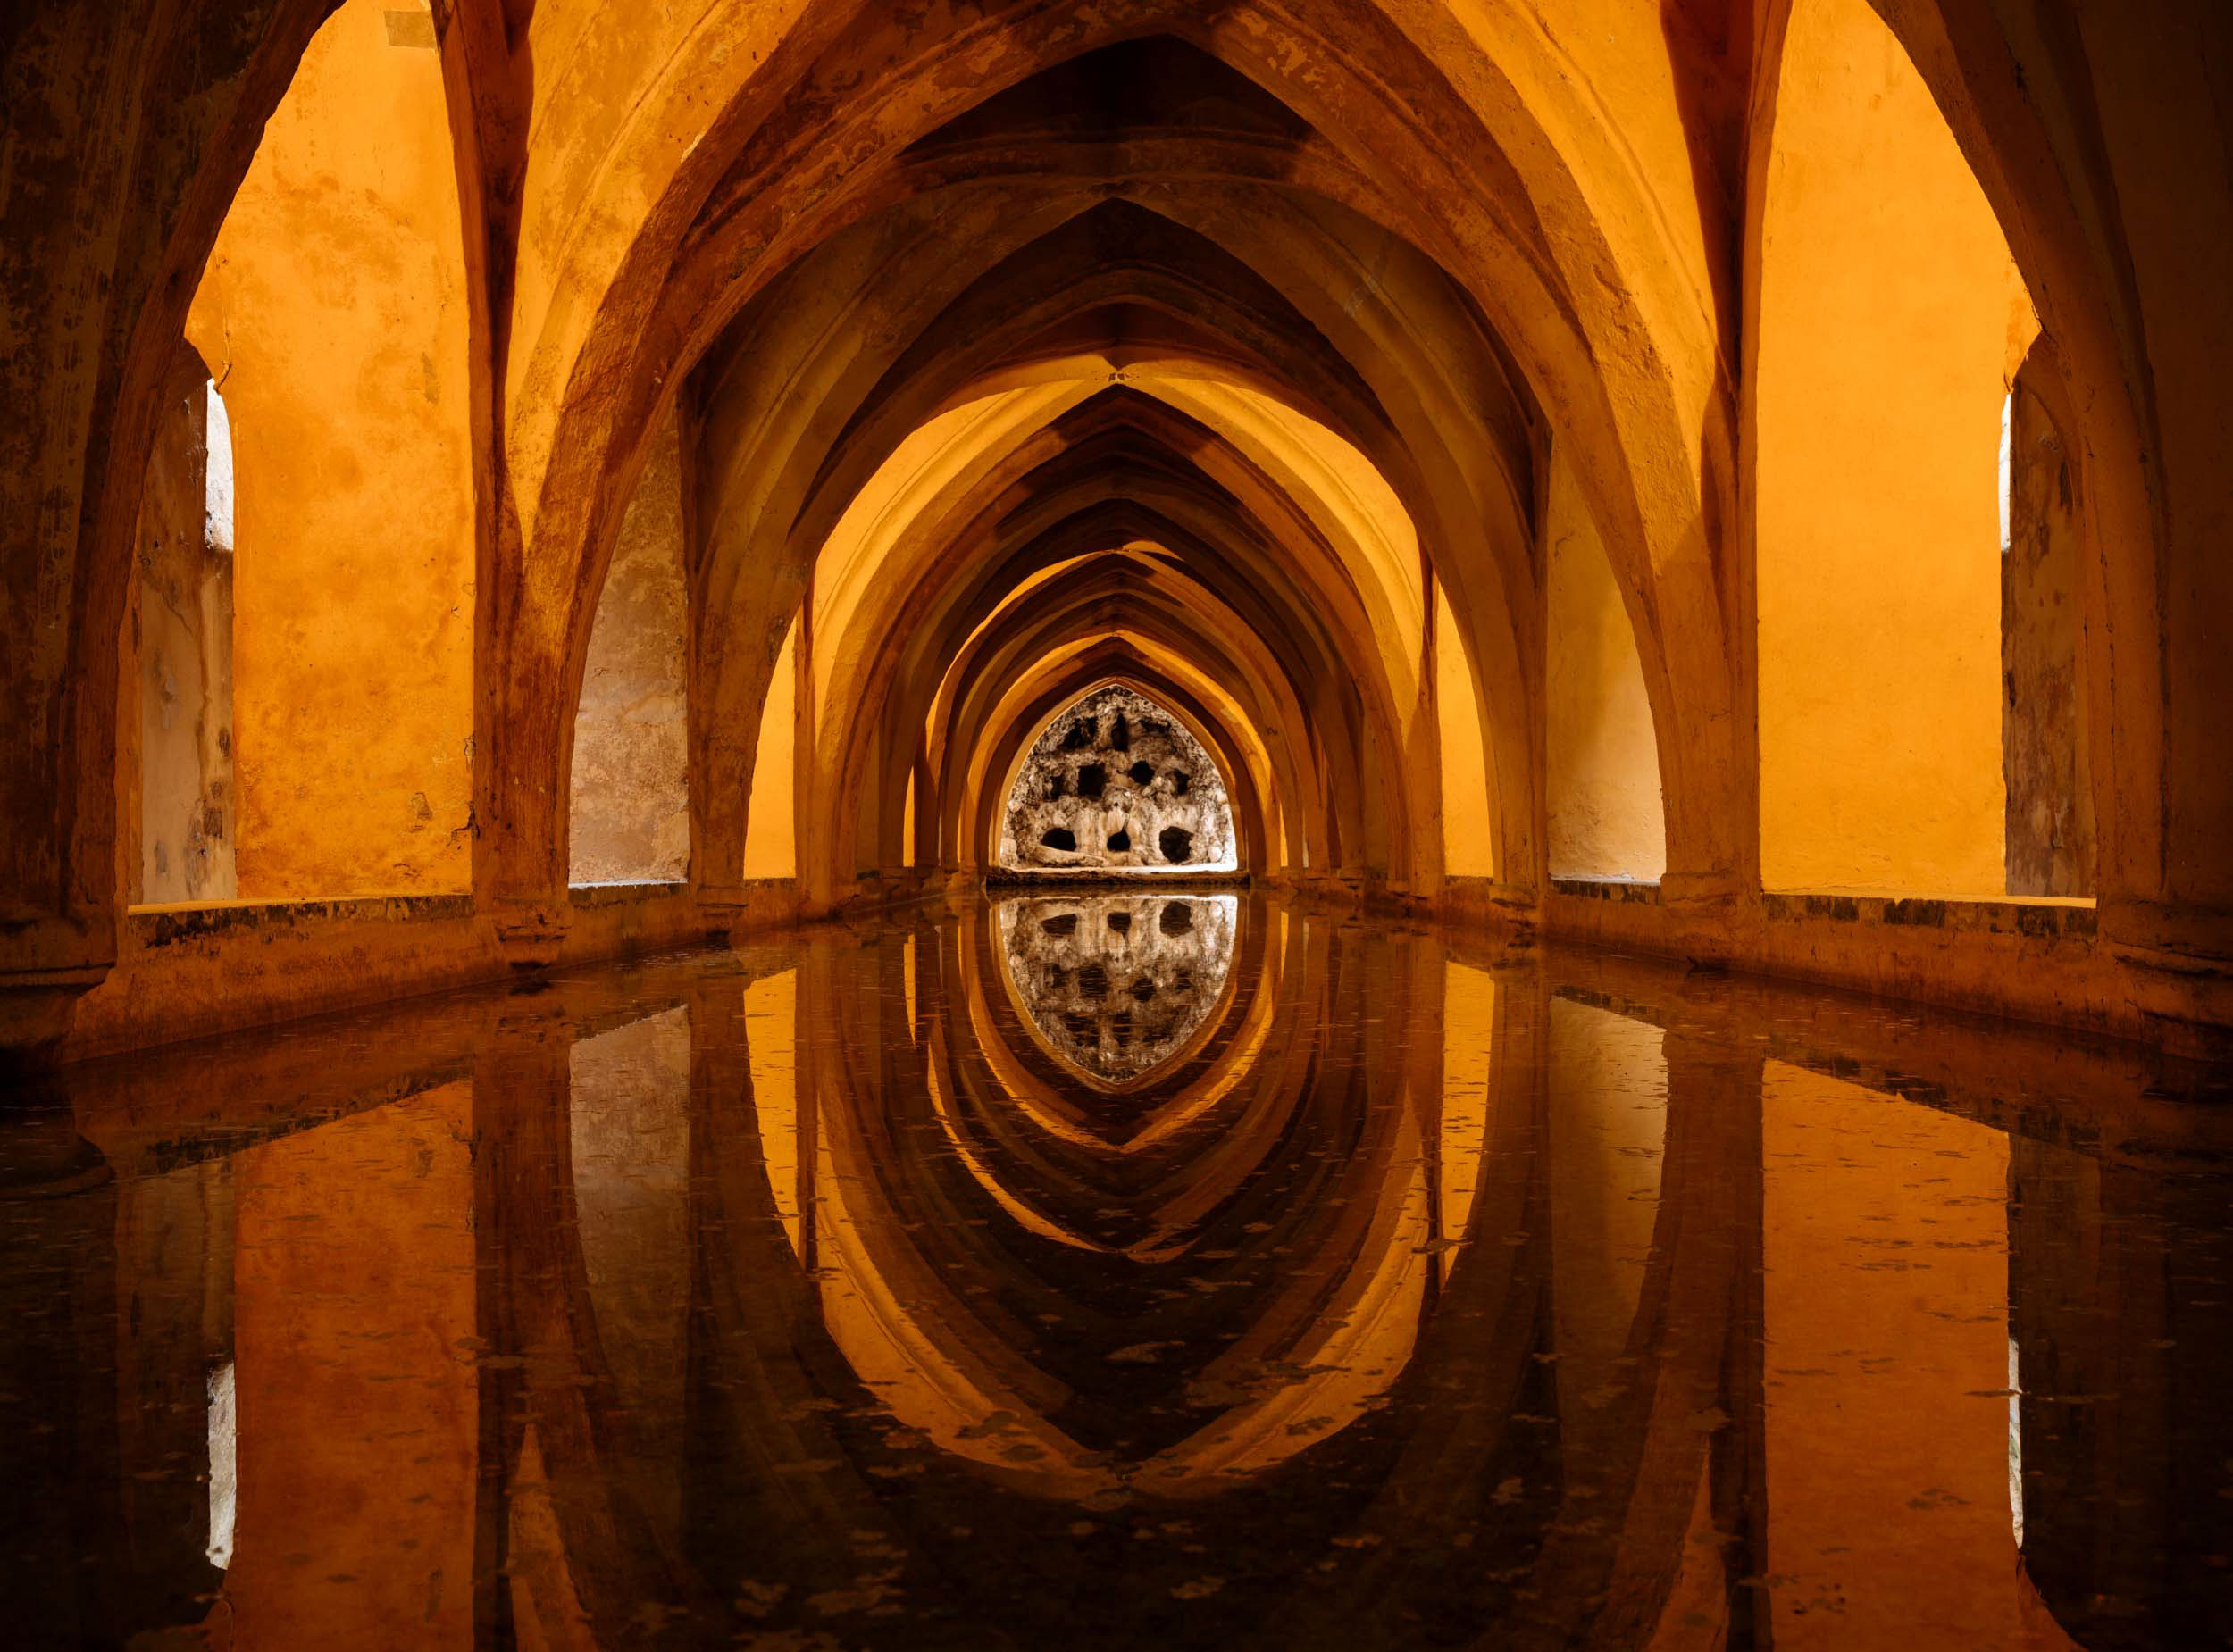 royal-alcazar-palace-interior-architecture-seville-andalucia-spain